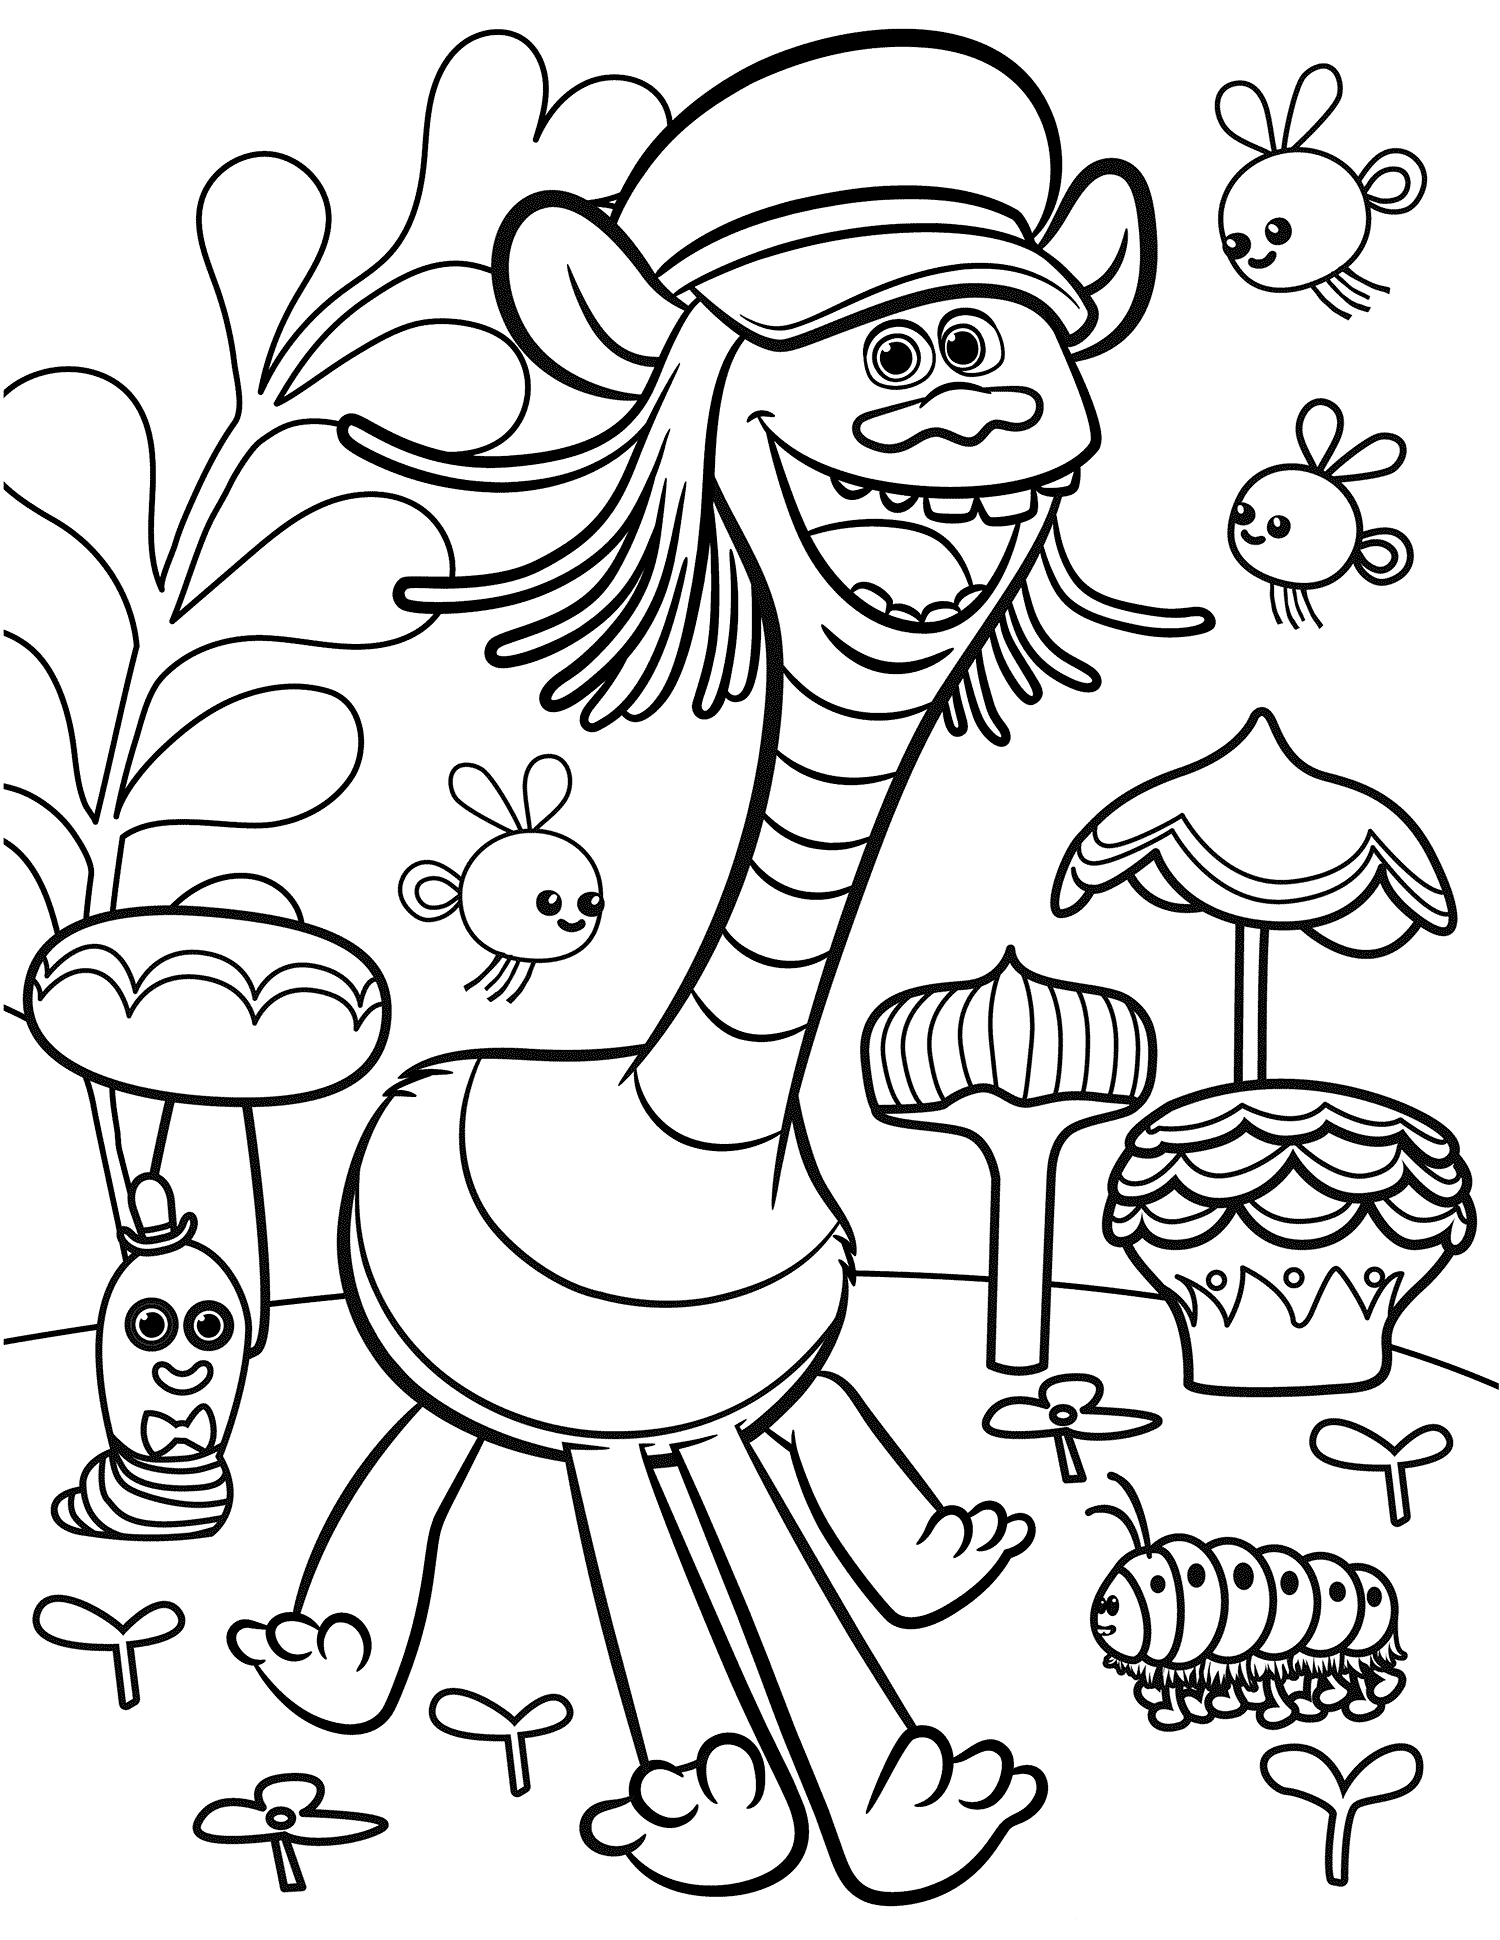 Trolls movie coloring pages best coloring pages for kids for Fun coloring pages for kids